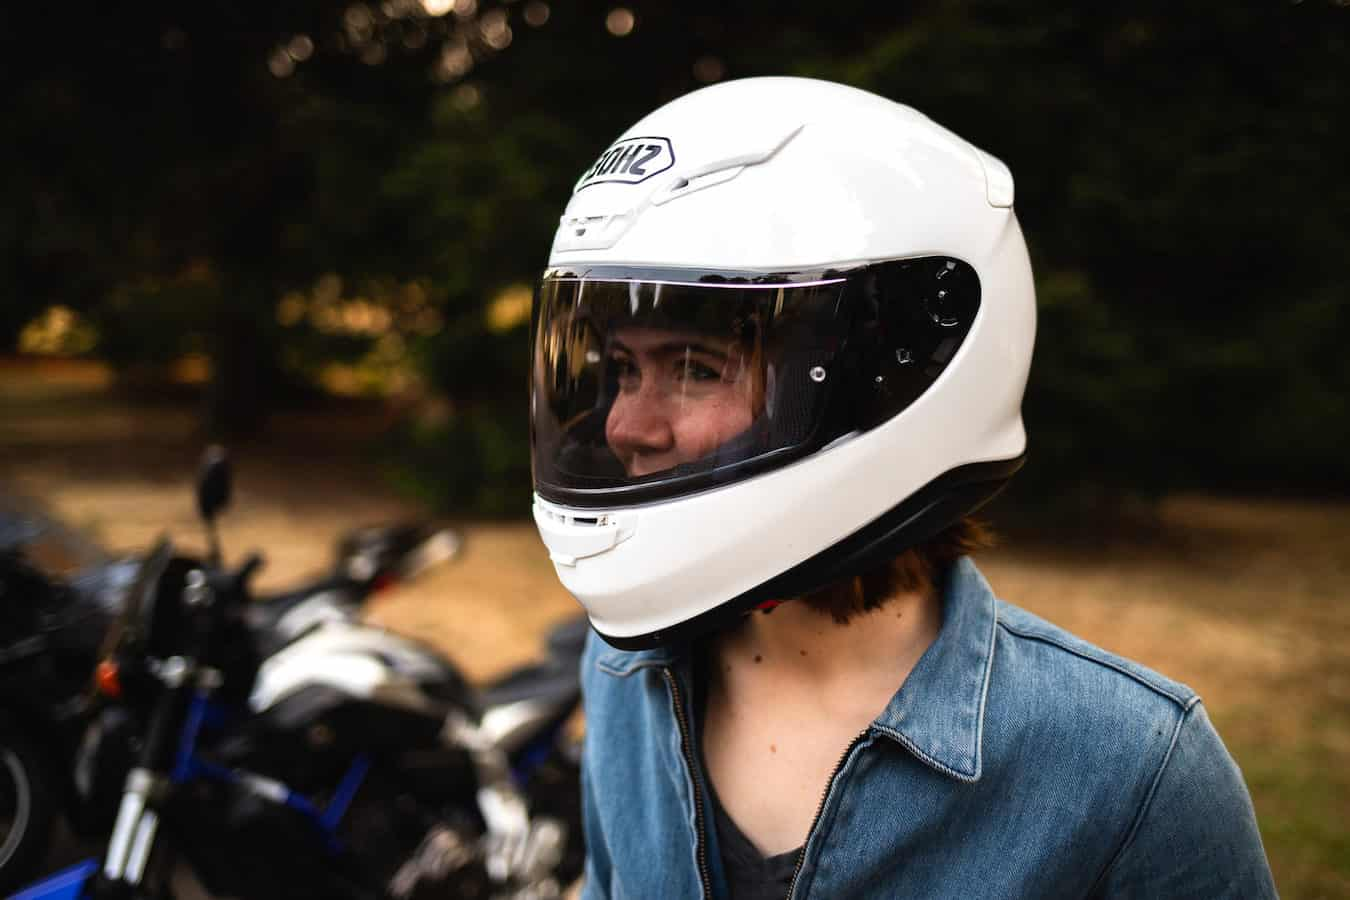 Doris trying out a new visor for her motorcycle helmet.